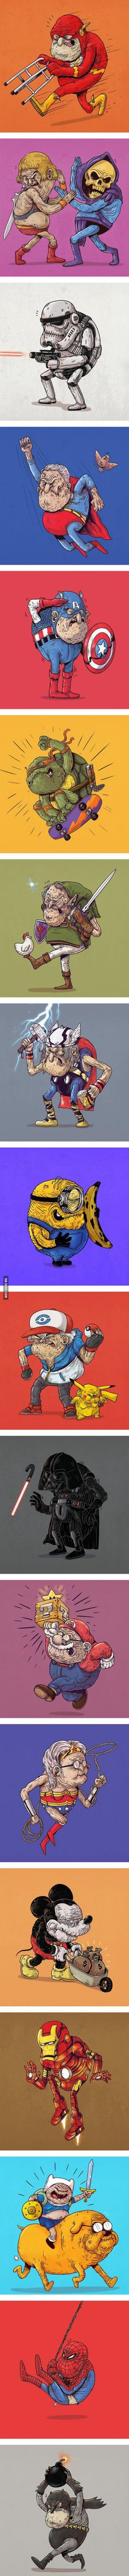 If Pop Culture Icons Grew Old… (By Alex Solis)